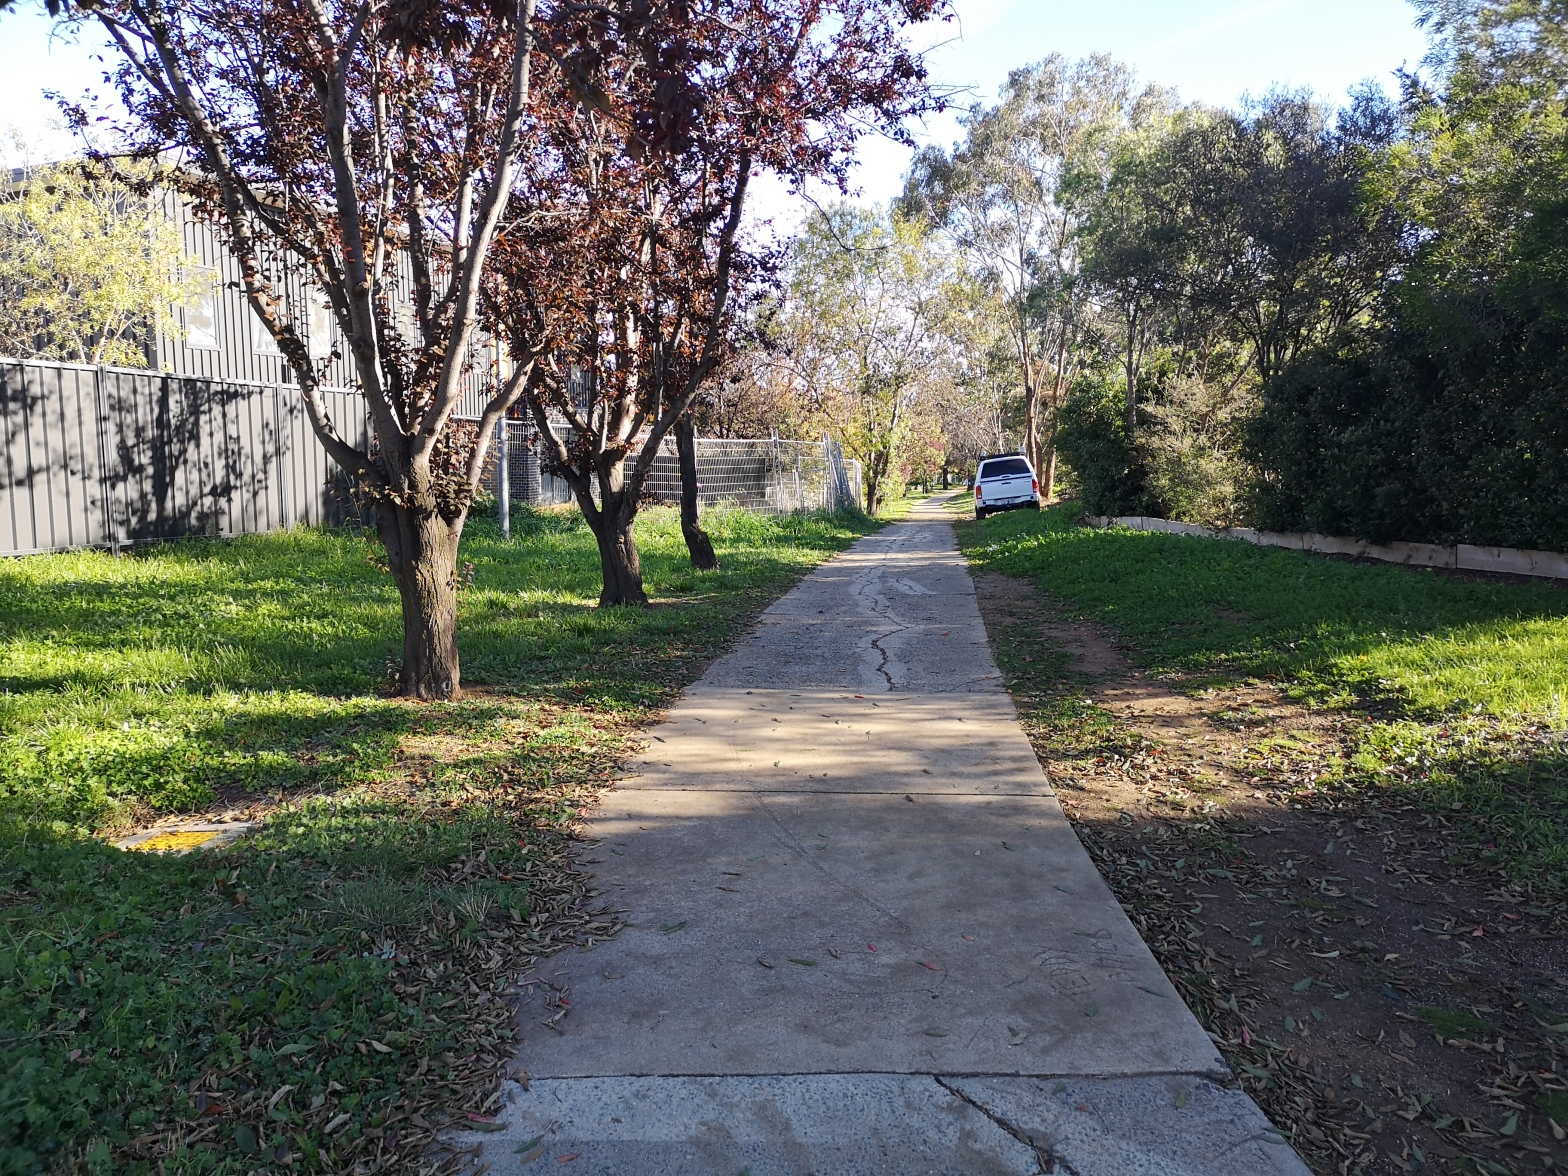 The path is safe but old. At some point, this path will need replacing. Community paths around Evatt local shops, Belconnen